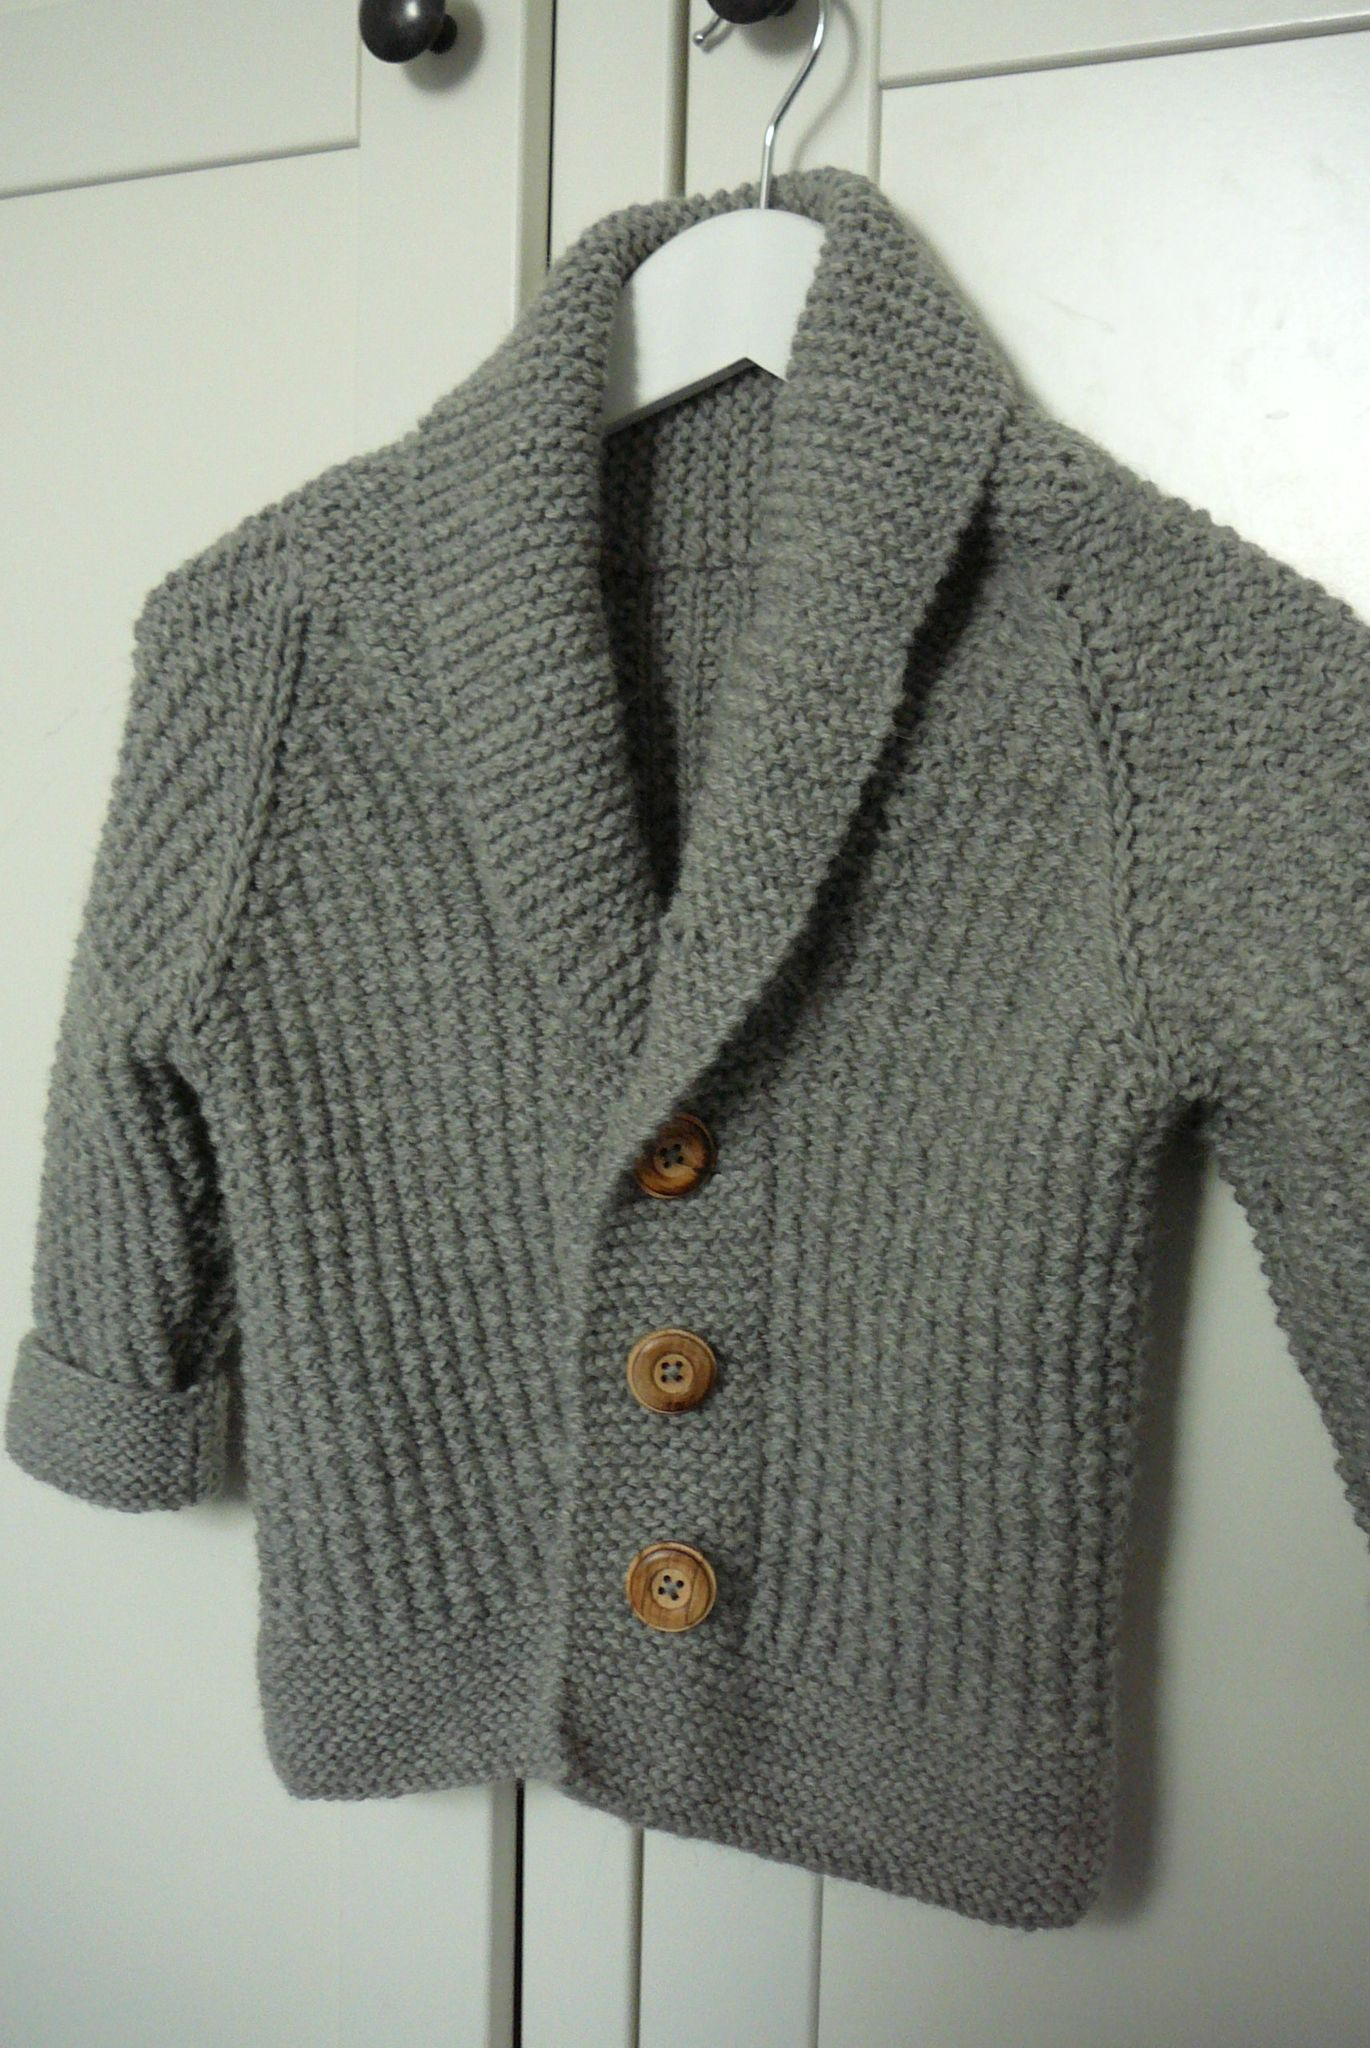 Super gilet tricot fillette 4 5 ans RE92